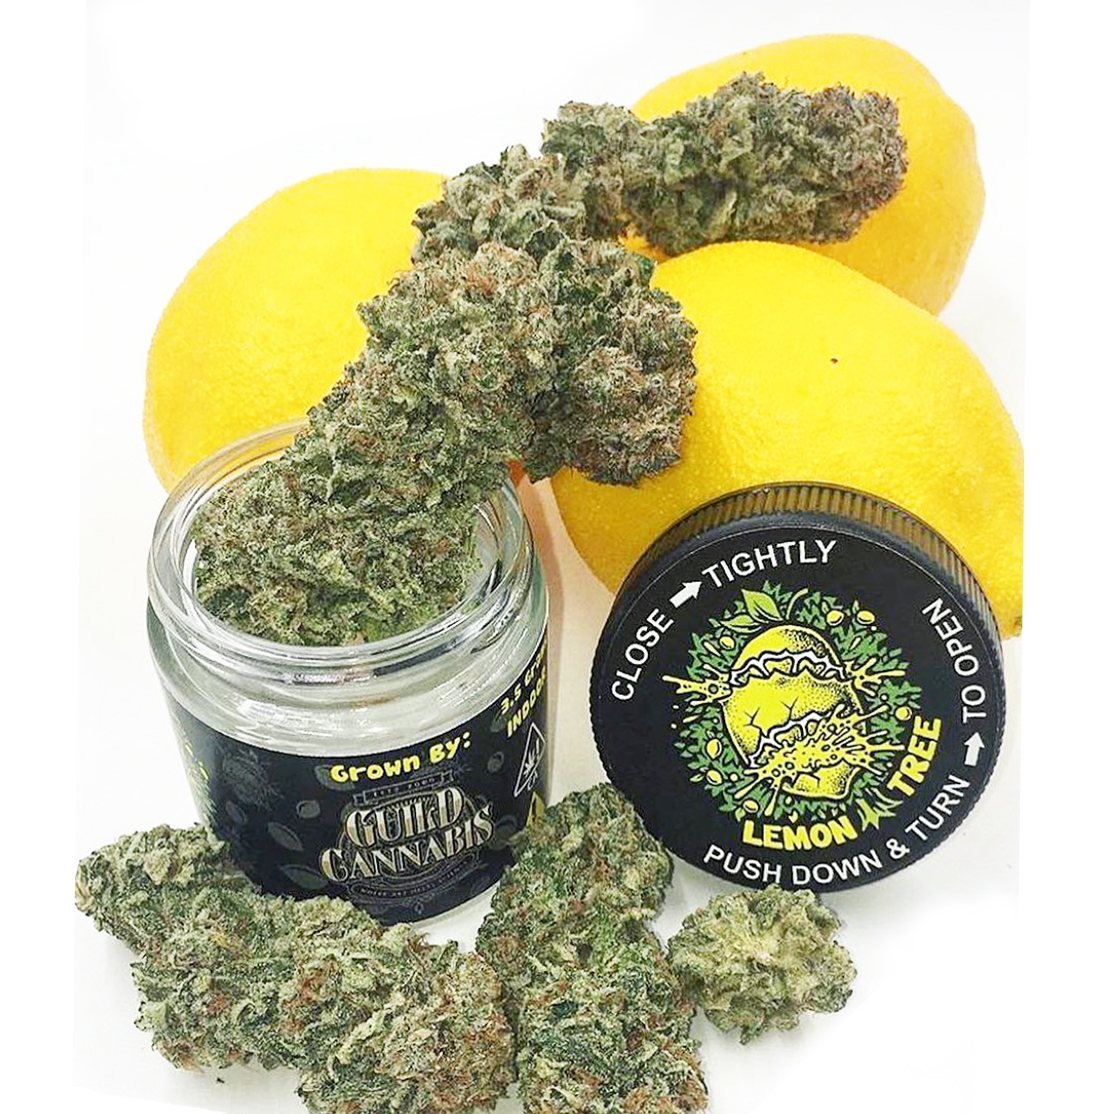 Lemon Tree| cannabisstores